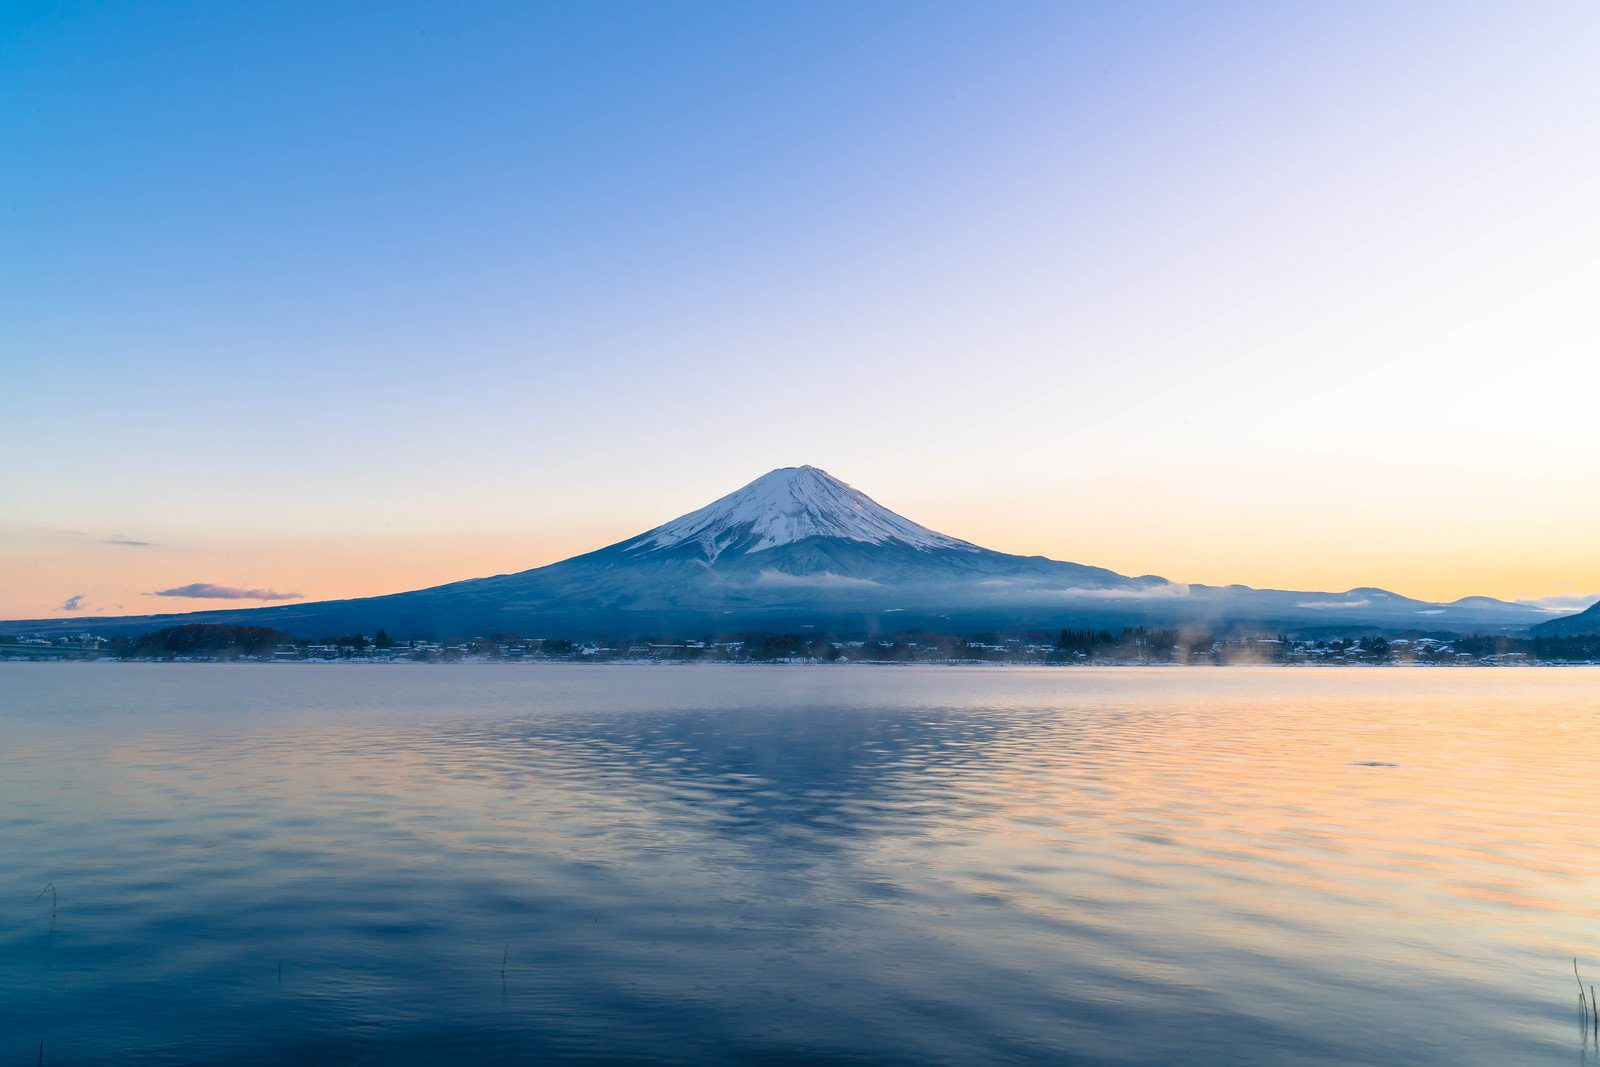 View of Mt Fuji from Lake Kawaguchi in the Five Lakes Region